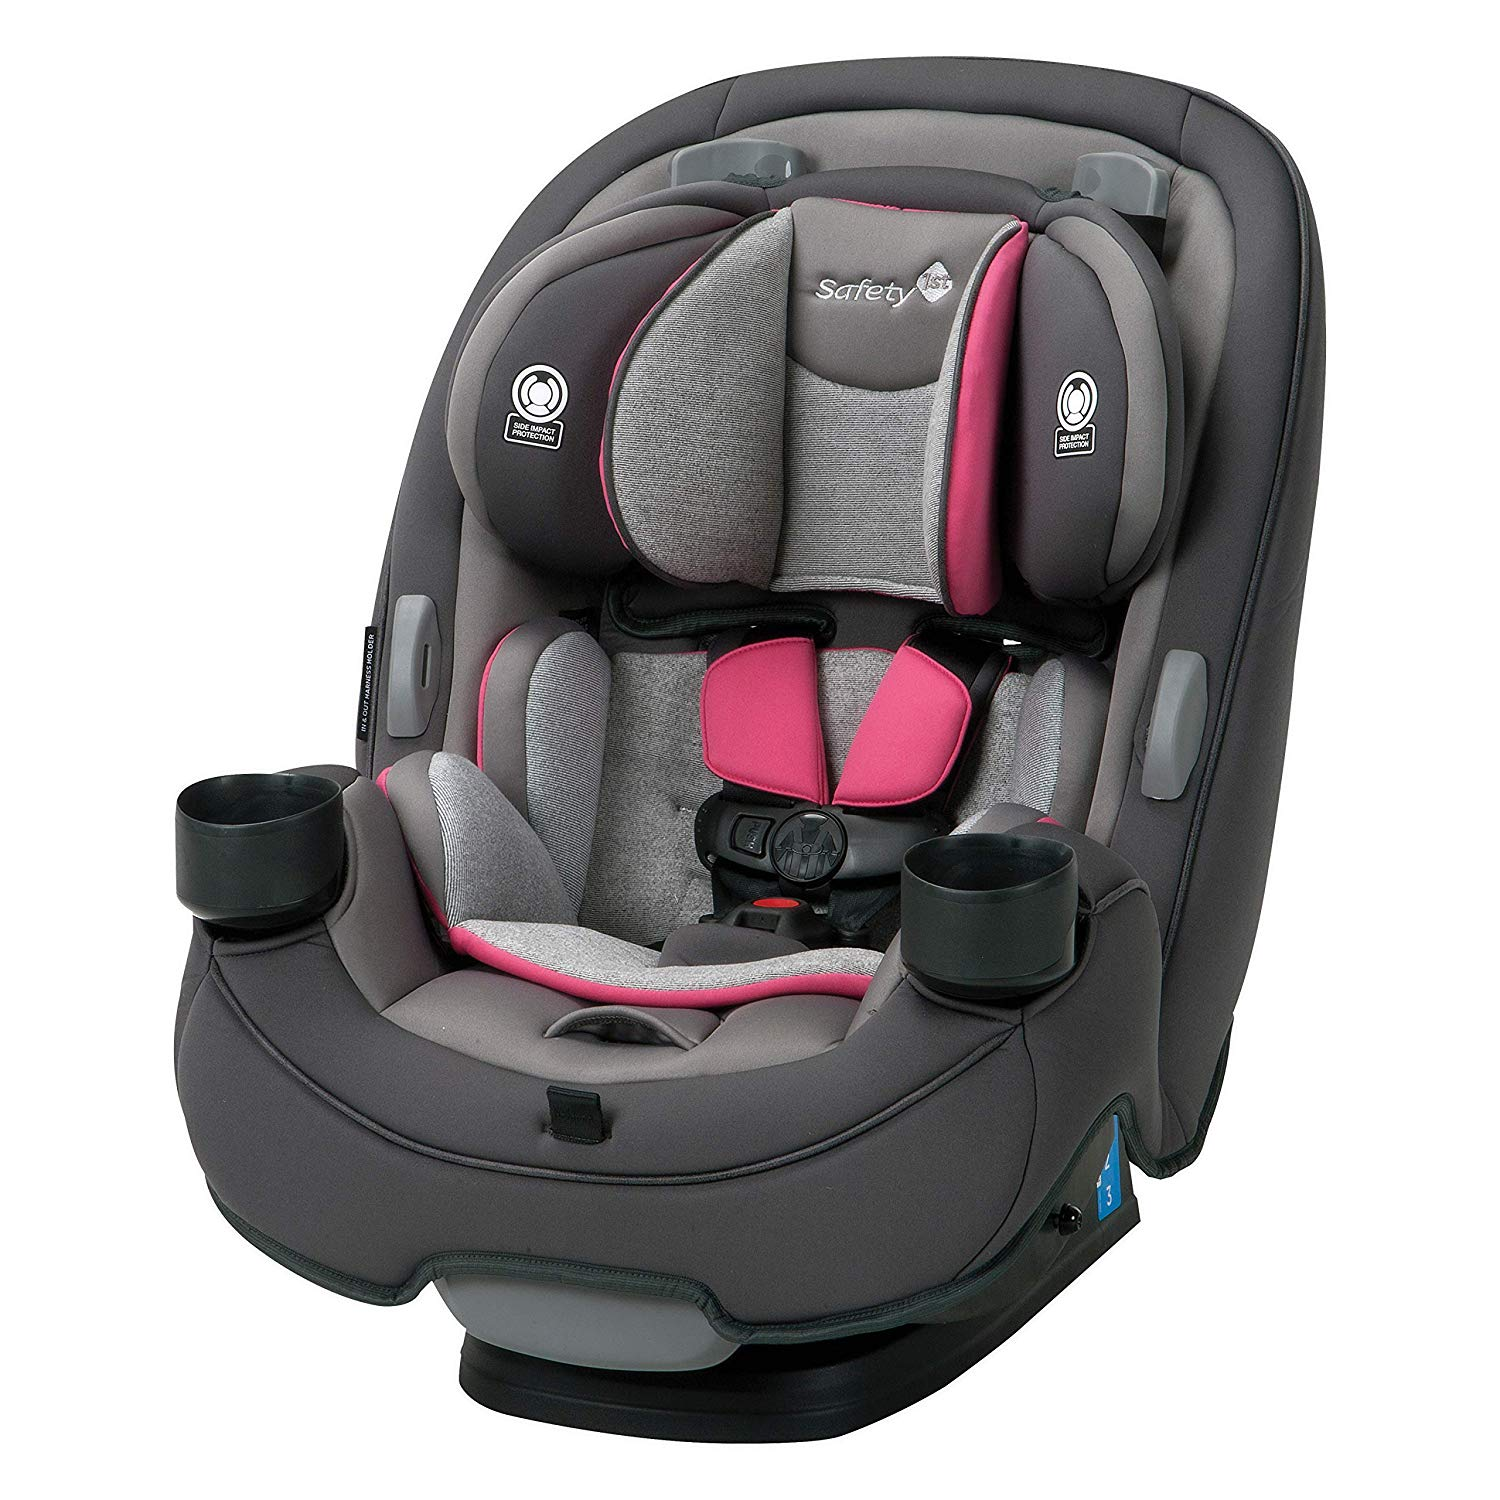 Safety 1st Go 3-in-1 Car Seat